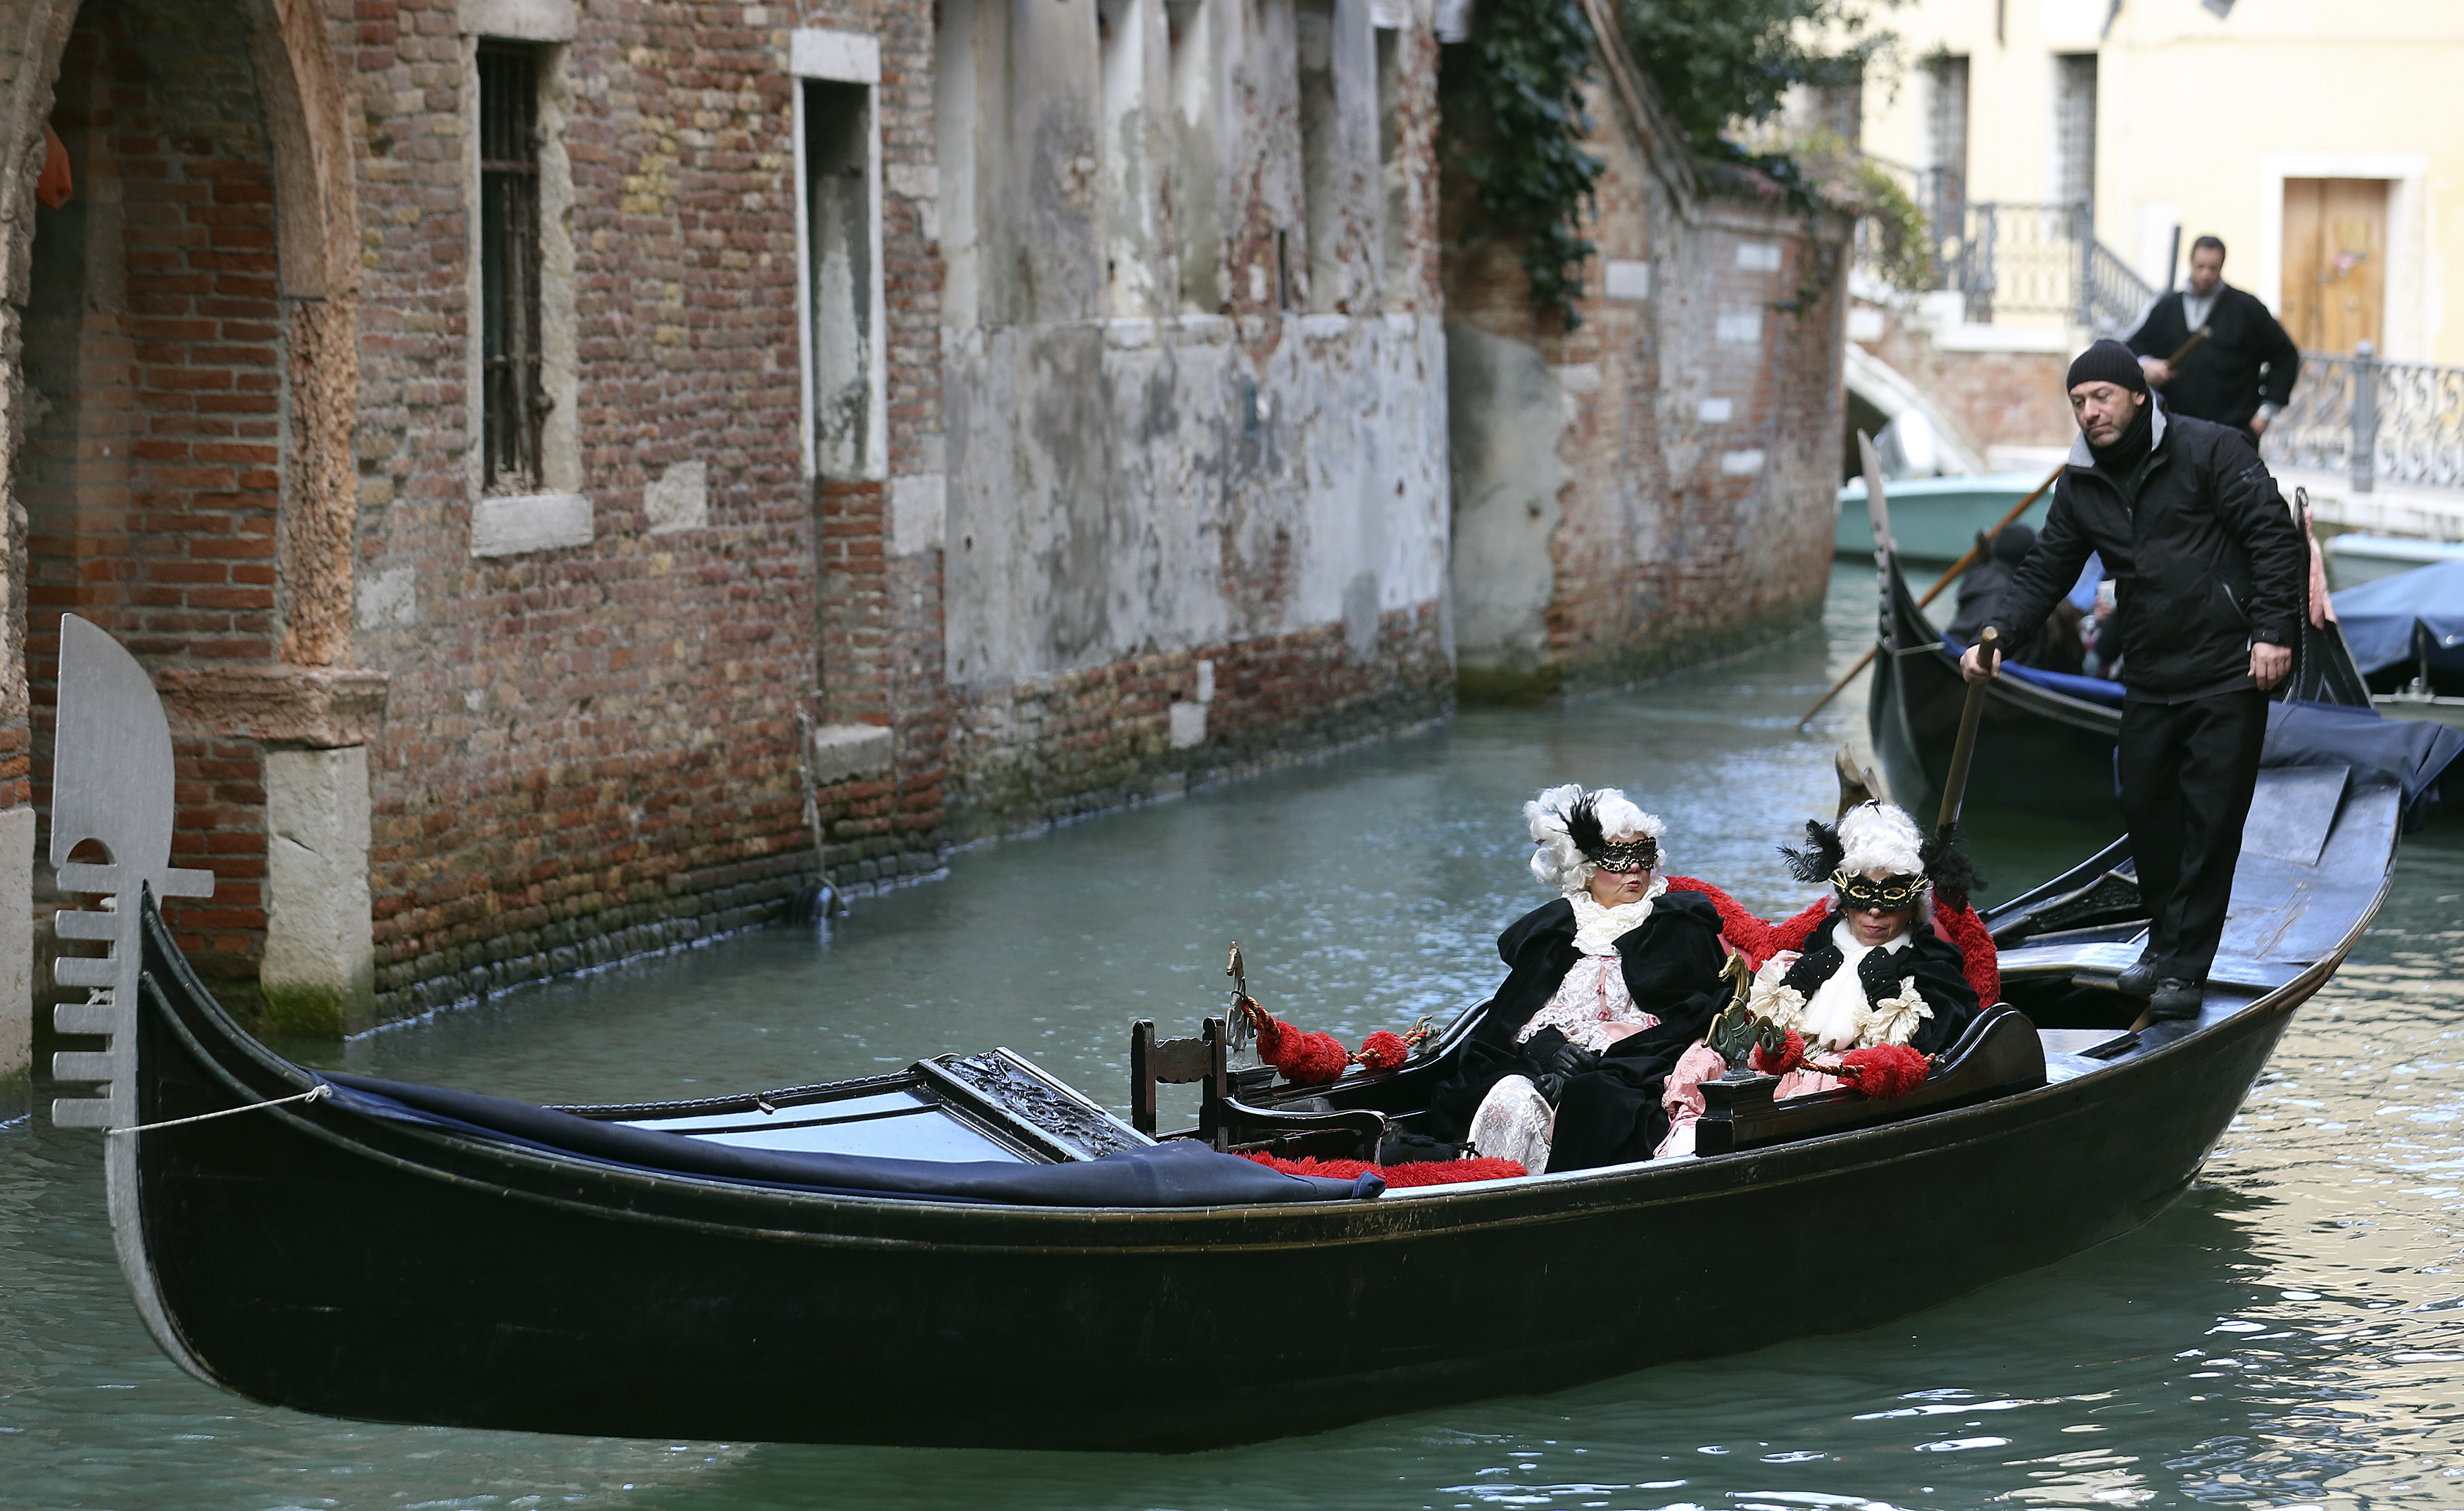 Masked revelers ride a gondola during the Venice Carnival, February 7, 2015. Photo by Stefano Rellandini/REUTERS.